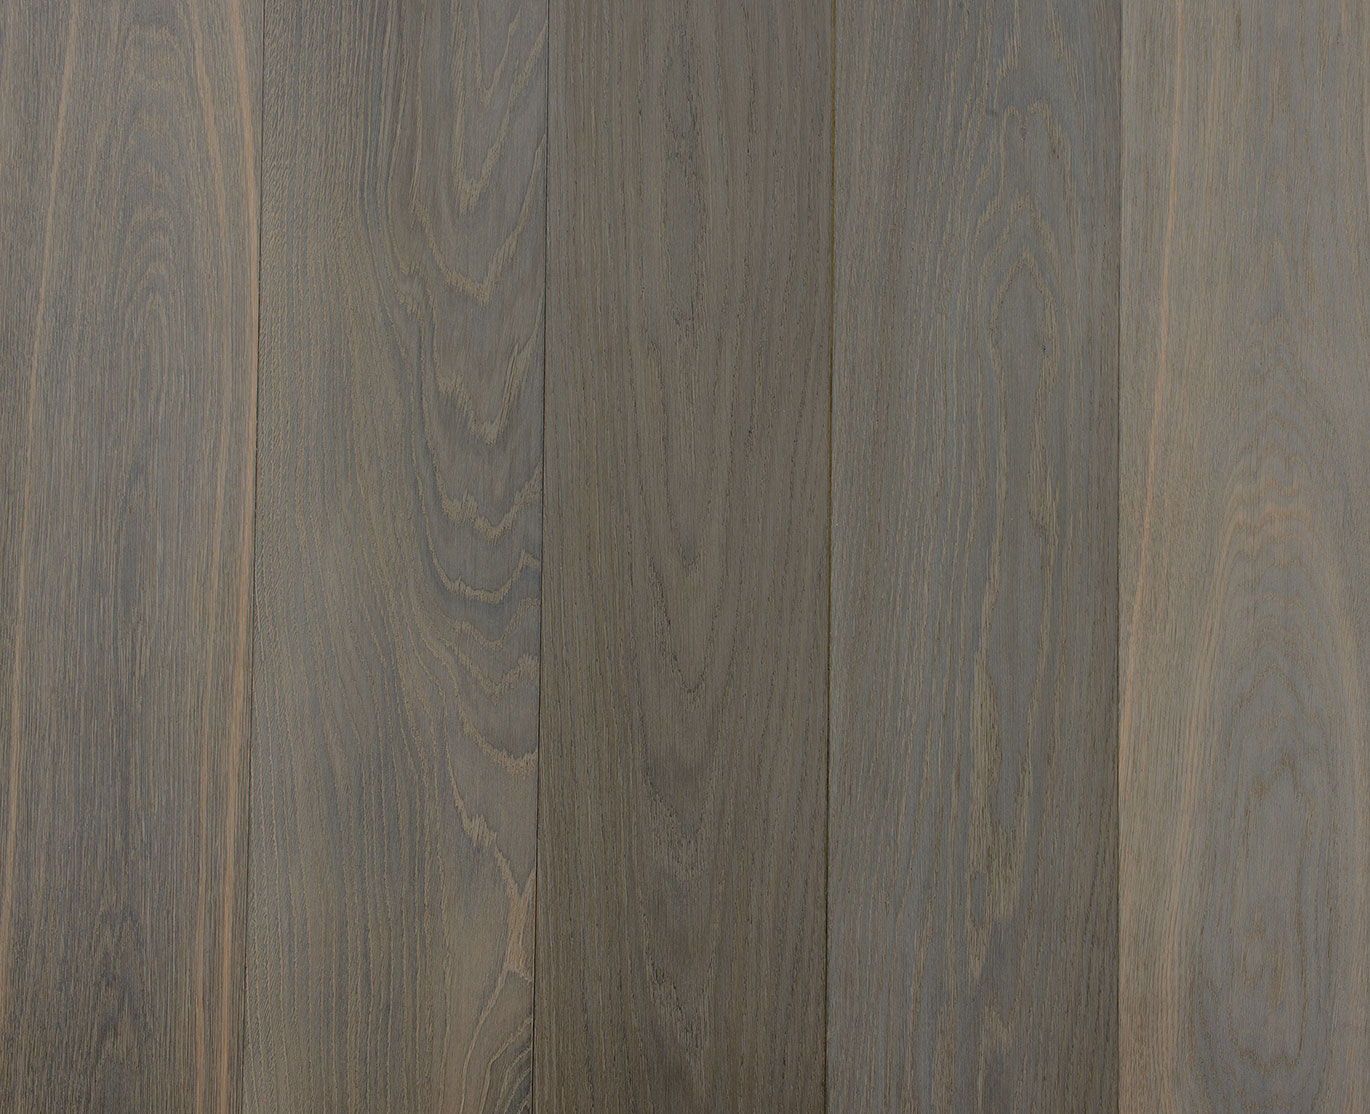 air floors diego collection vegas full laminate las russet antique flooring mm the reviews factory bel valerio by luxury dynasty san rodeo formaldehyde bellagio walnut olive